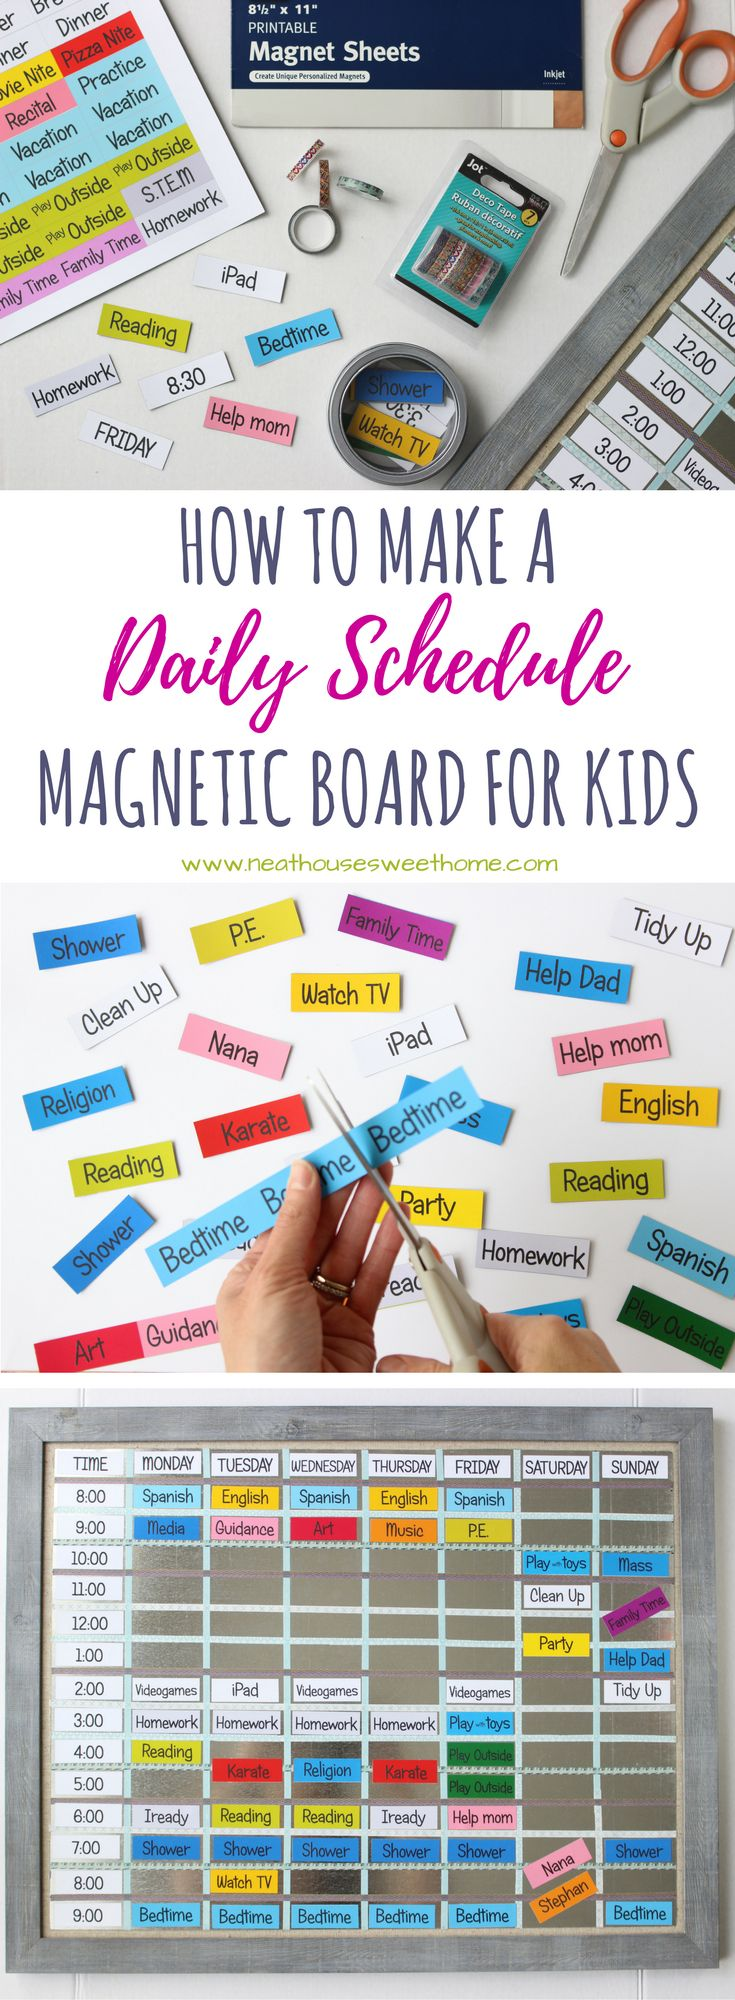 *Might also be handy for visual people like me ;)* Teach your kids time management with this quick and inexpensive DIY magnetic board schedule. Print at home on magnetic sheets and get organized today! via @flaviablogger